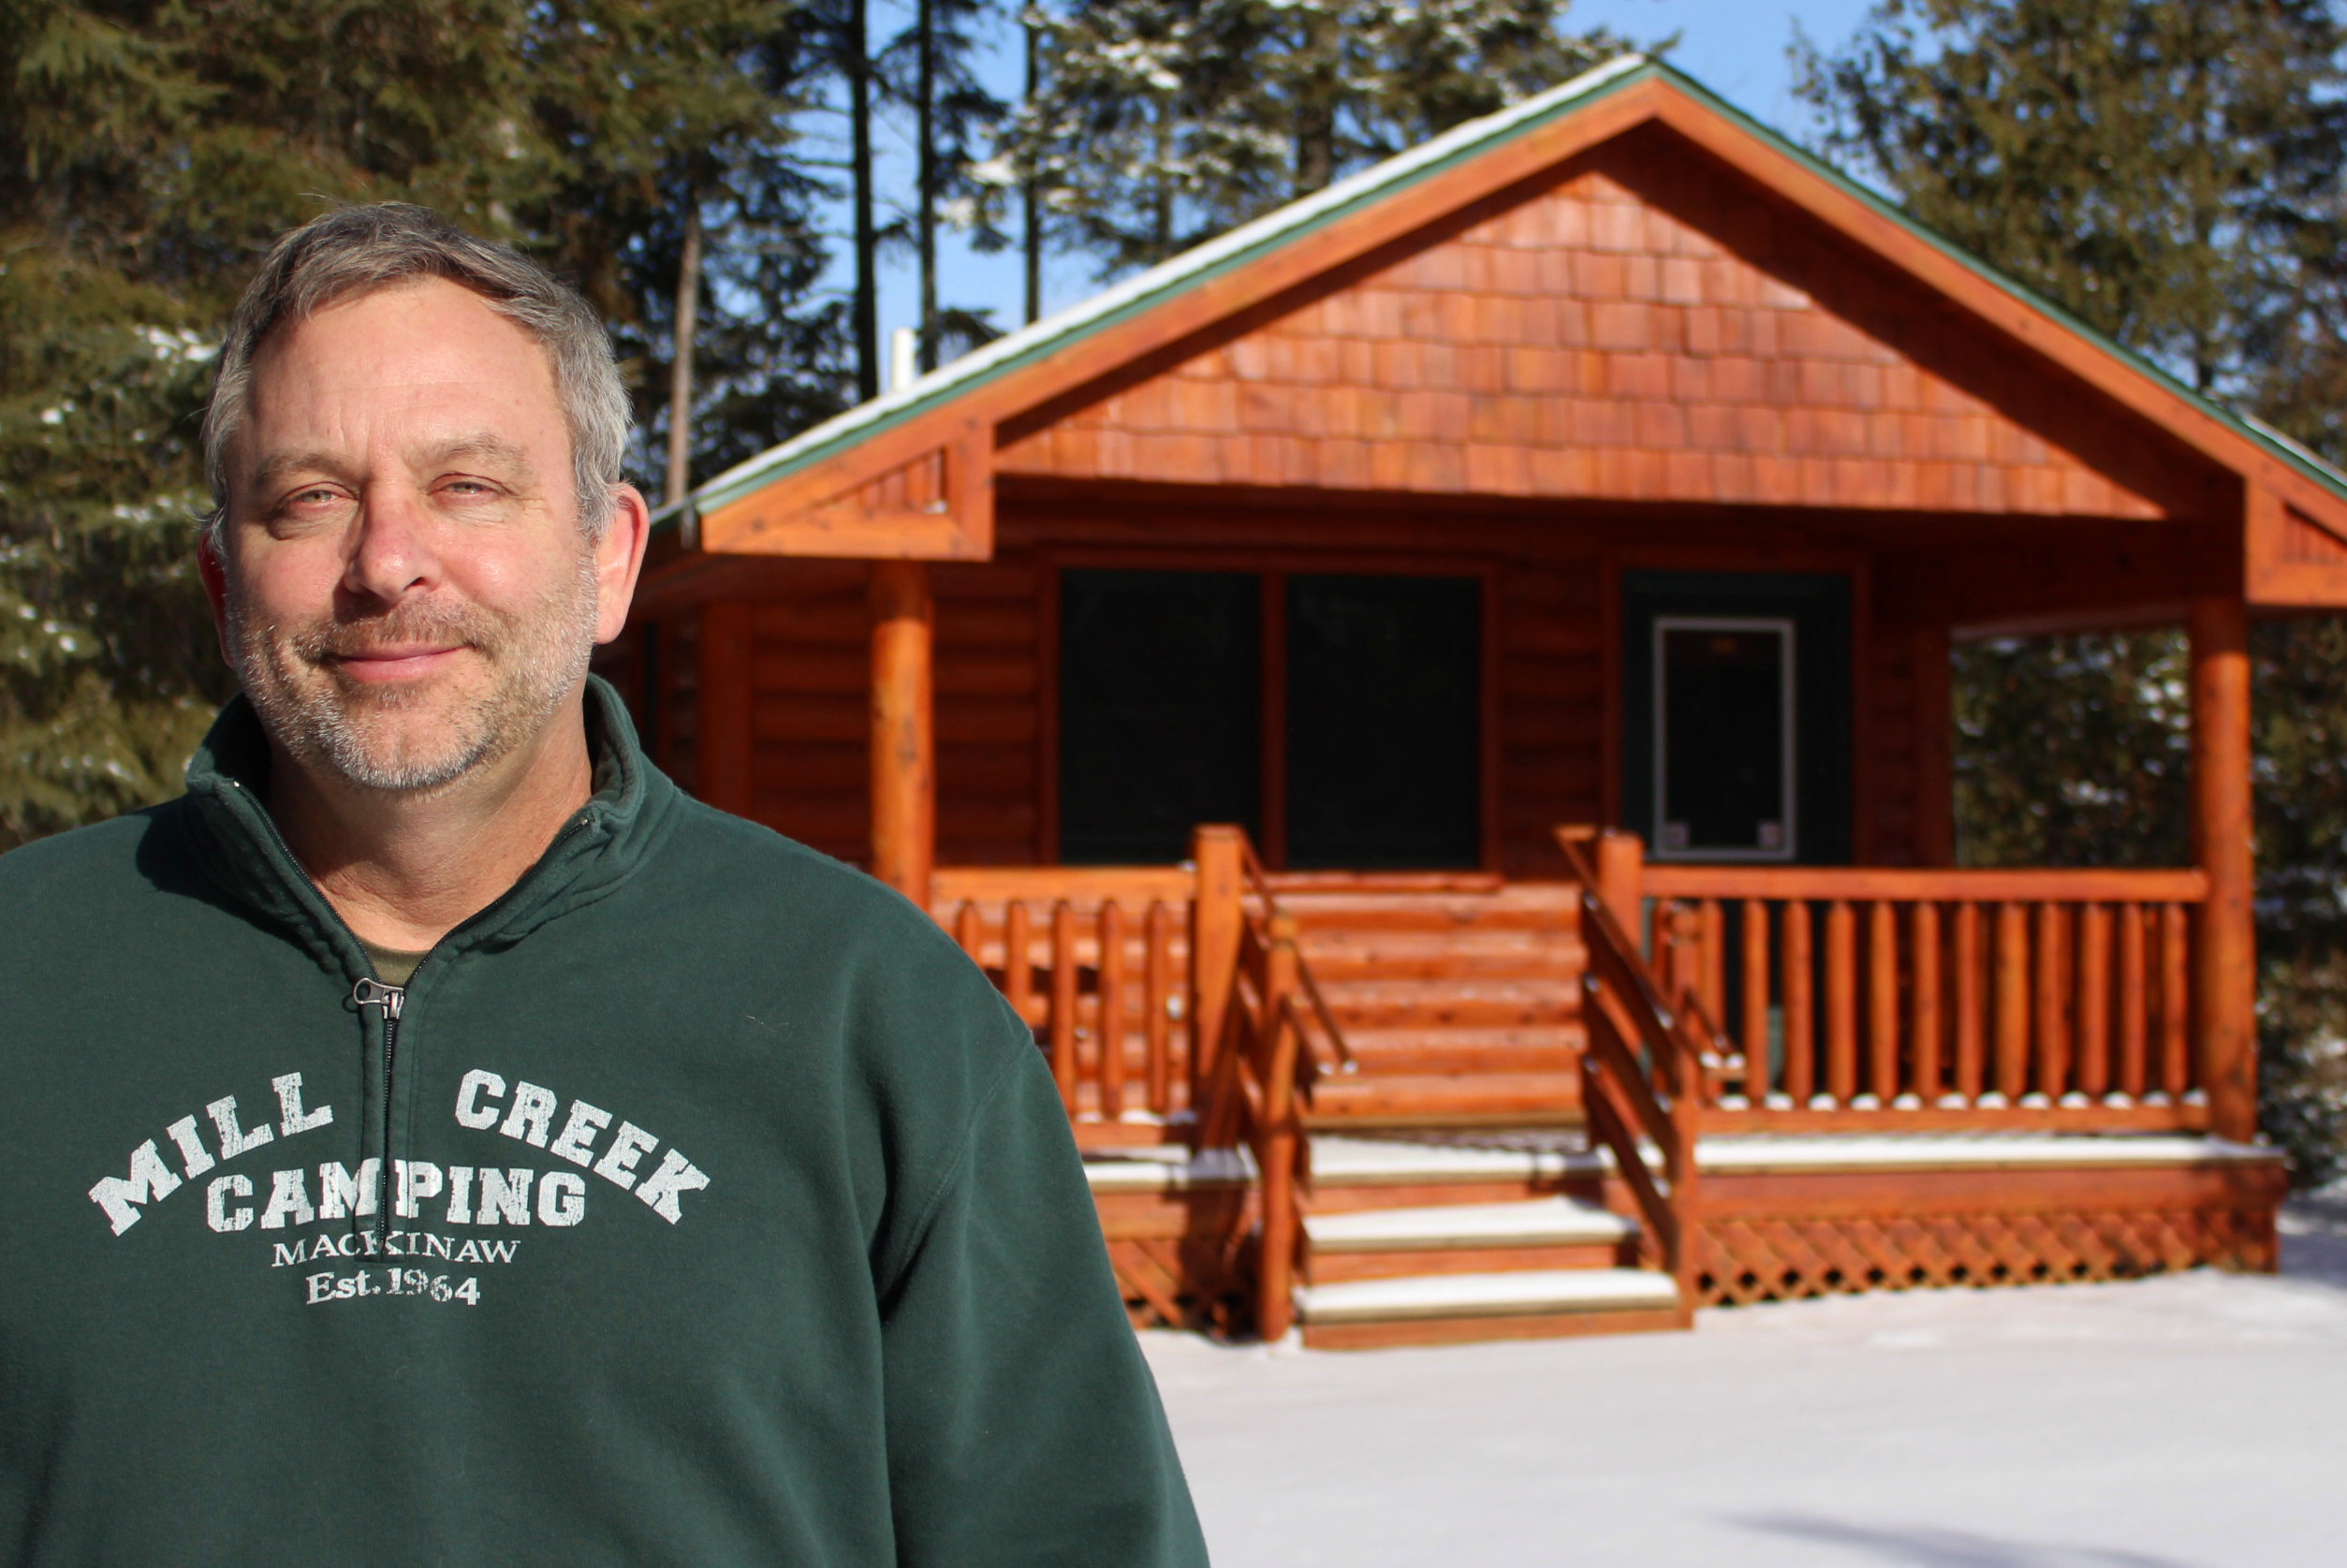 estate cabins real realty mackinaw crowne route of llc il